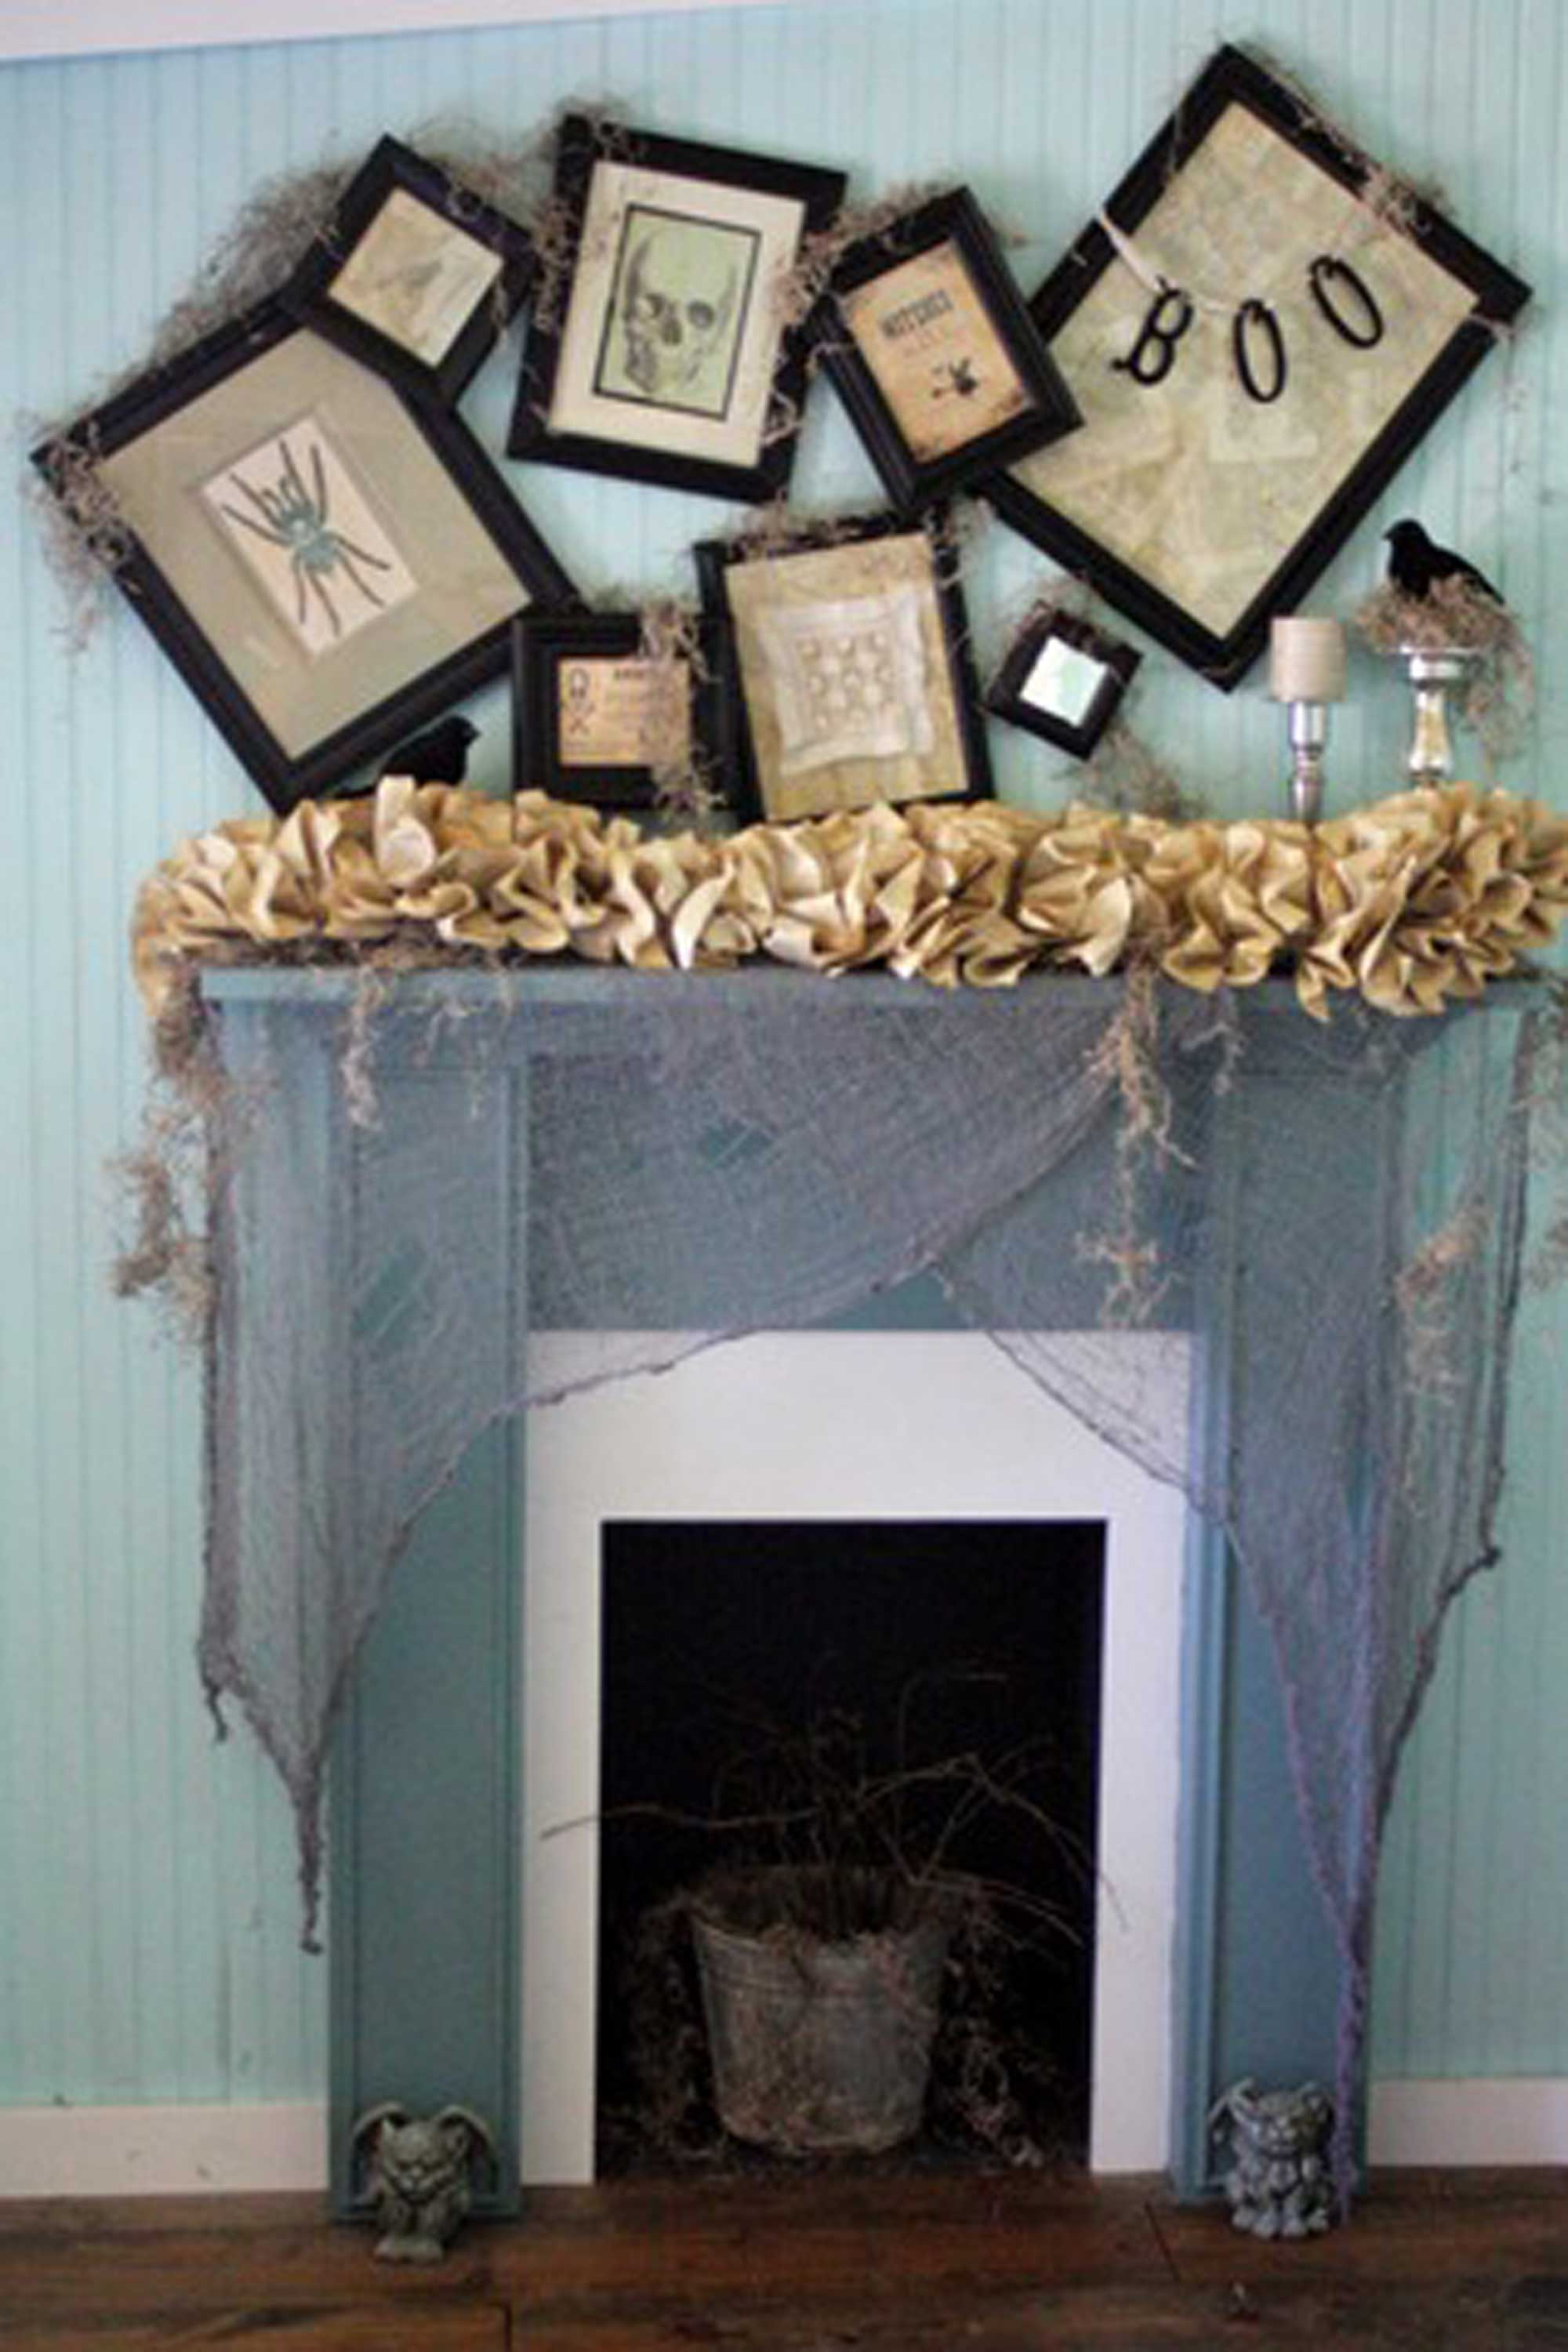 35 fall mantel decorating ideas halloween mantel decorations - Decorating House For Halloween